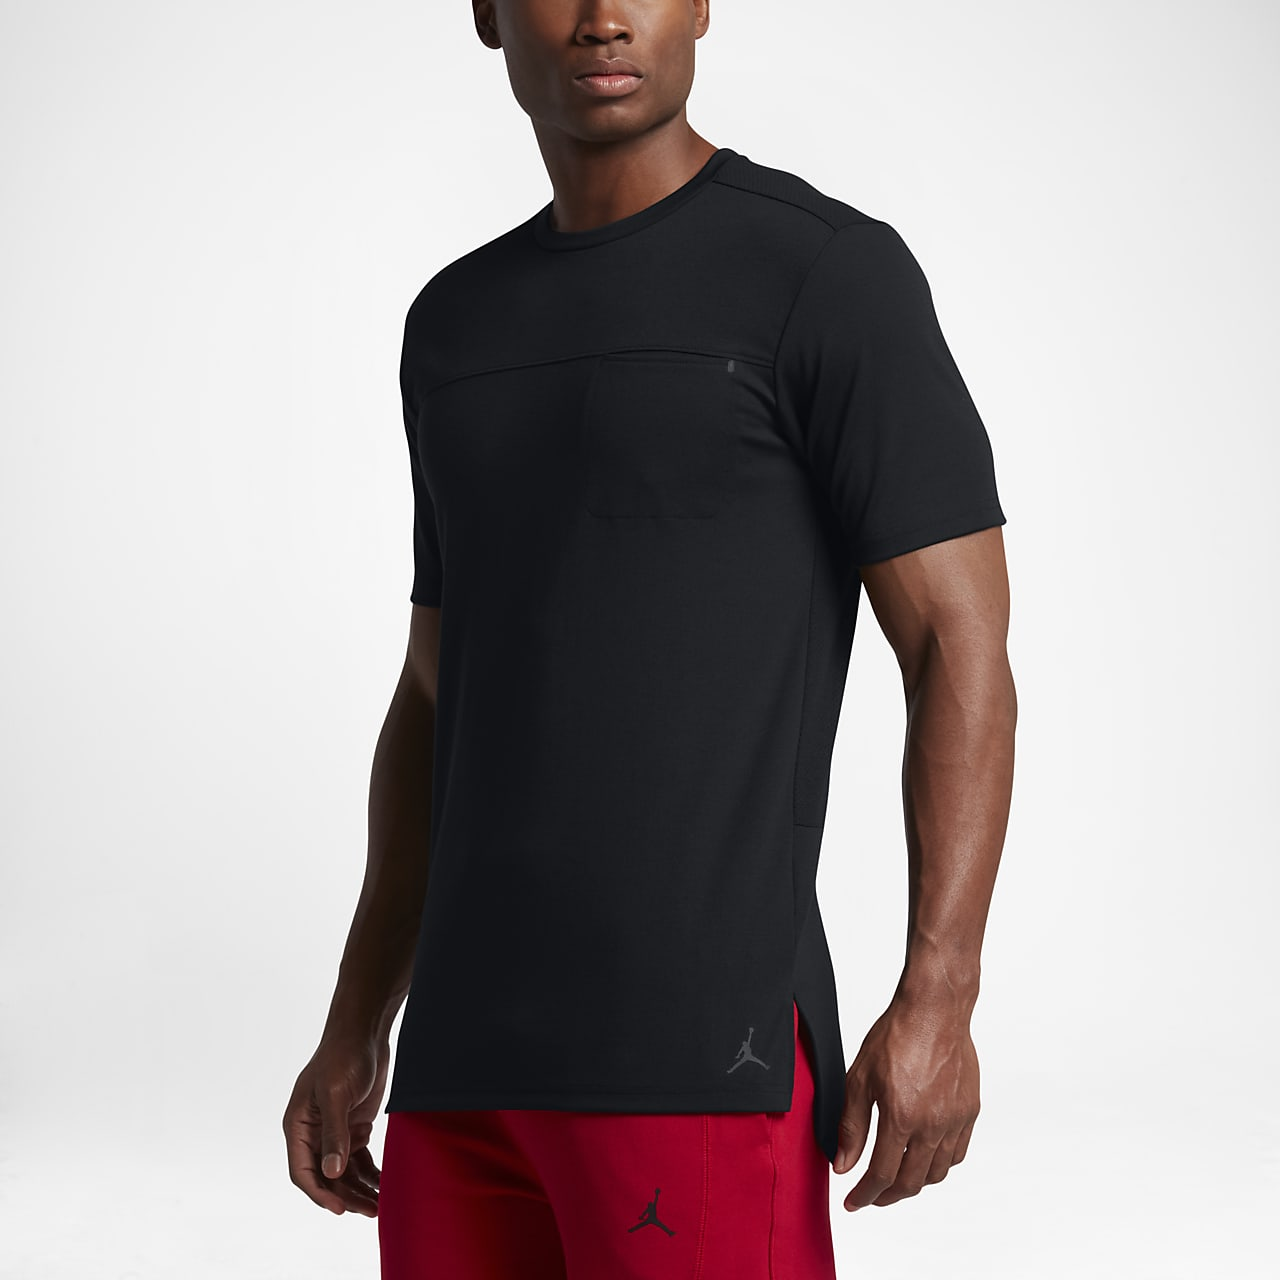 Jordan 23 Lux Pocket Men's T-Shirt